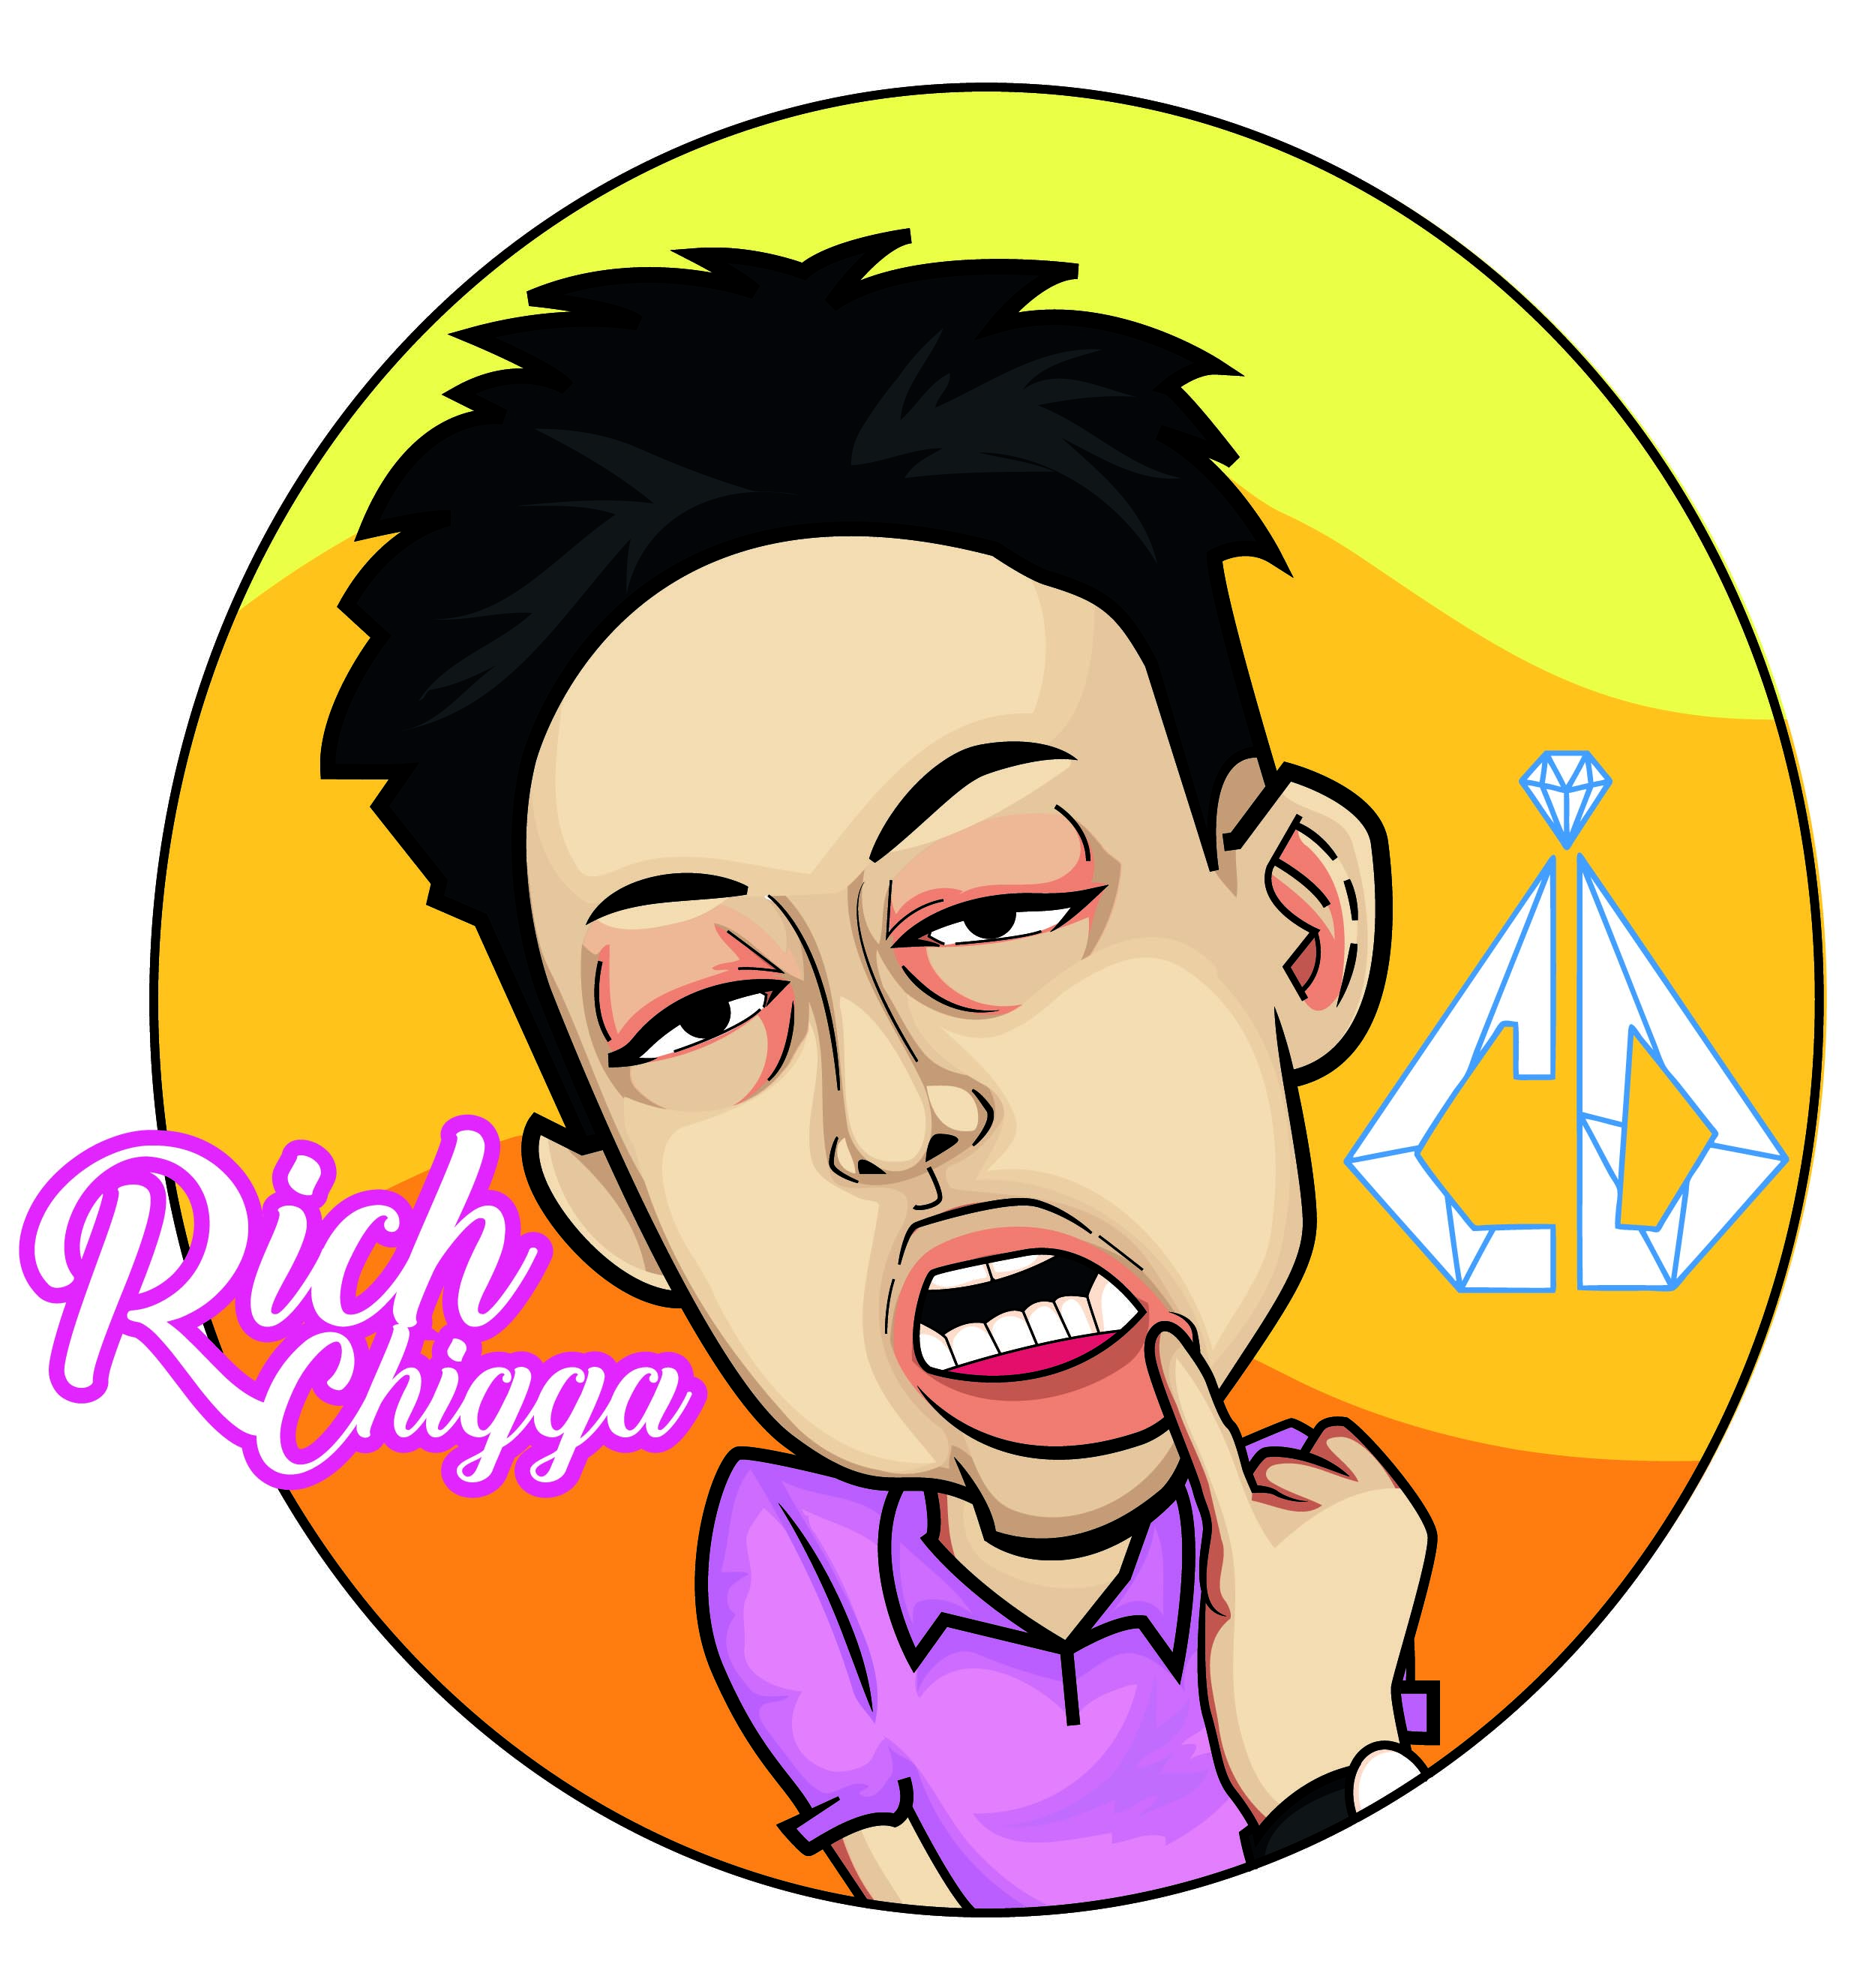 Rich chigga copy